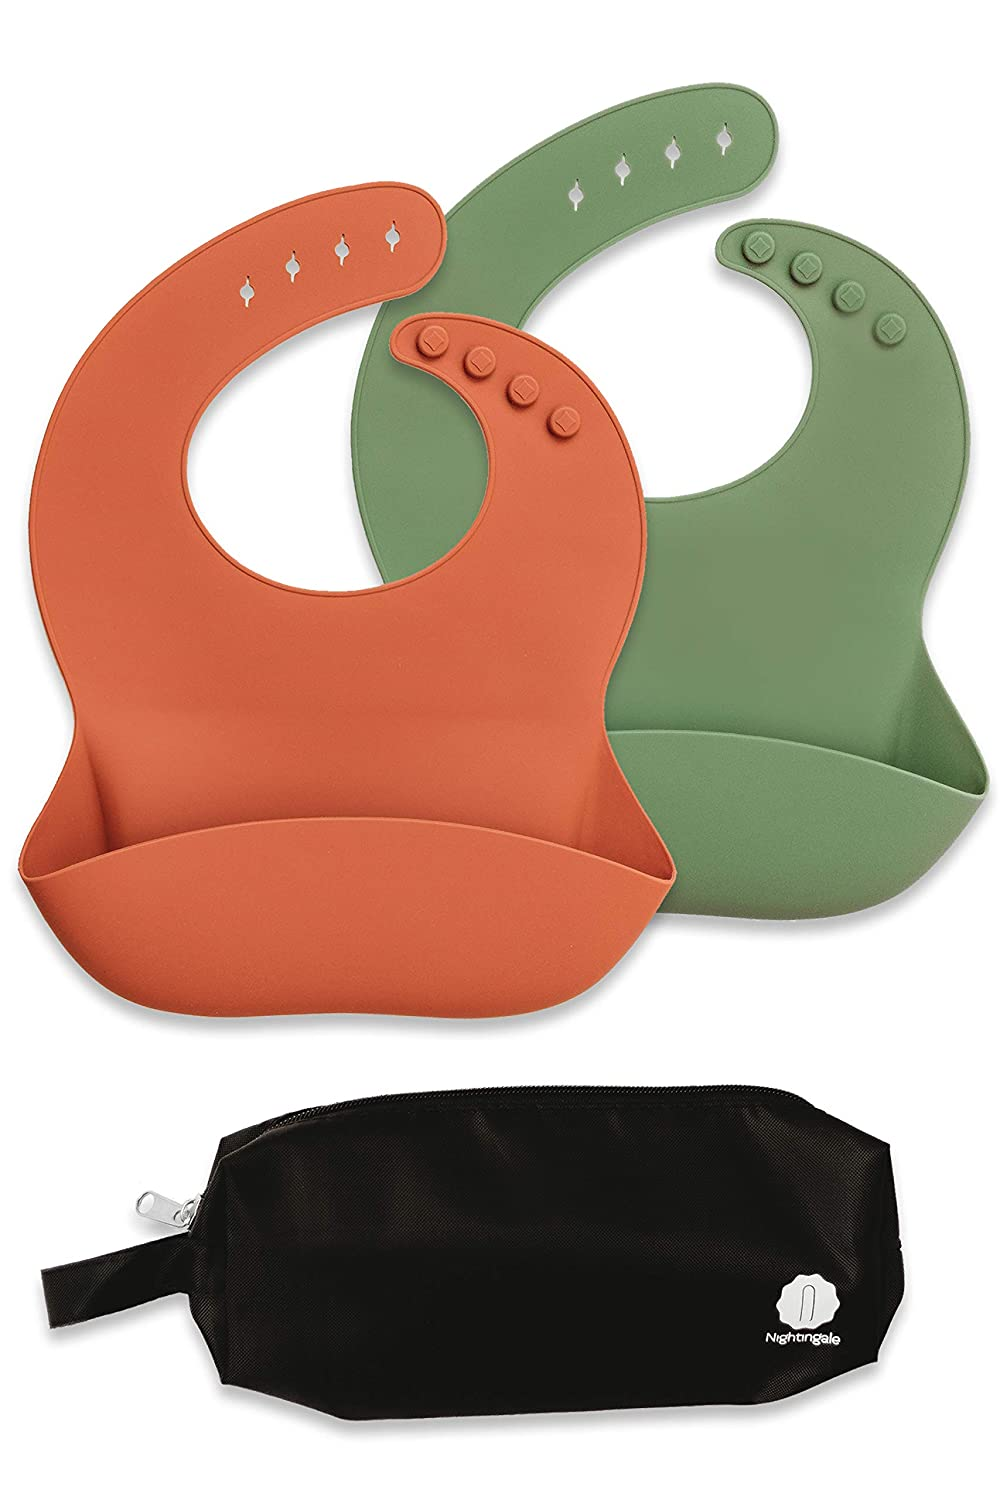 Platinum Silicone Baby Bibs for Babies and Toddlers Soft Clay Feeding Bib for Girls or Boys Waterproof Comfortable Silicone Baby Bibs with Pocket Stops Stains Adjustable